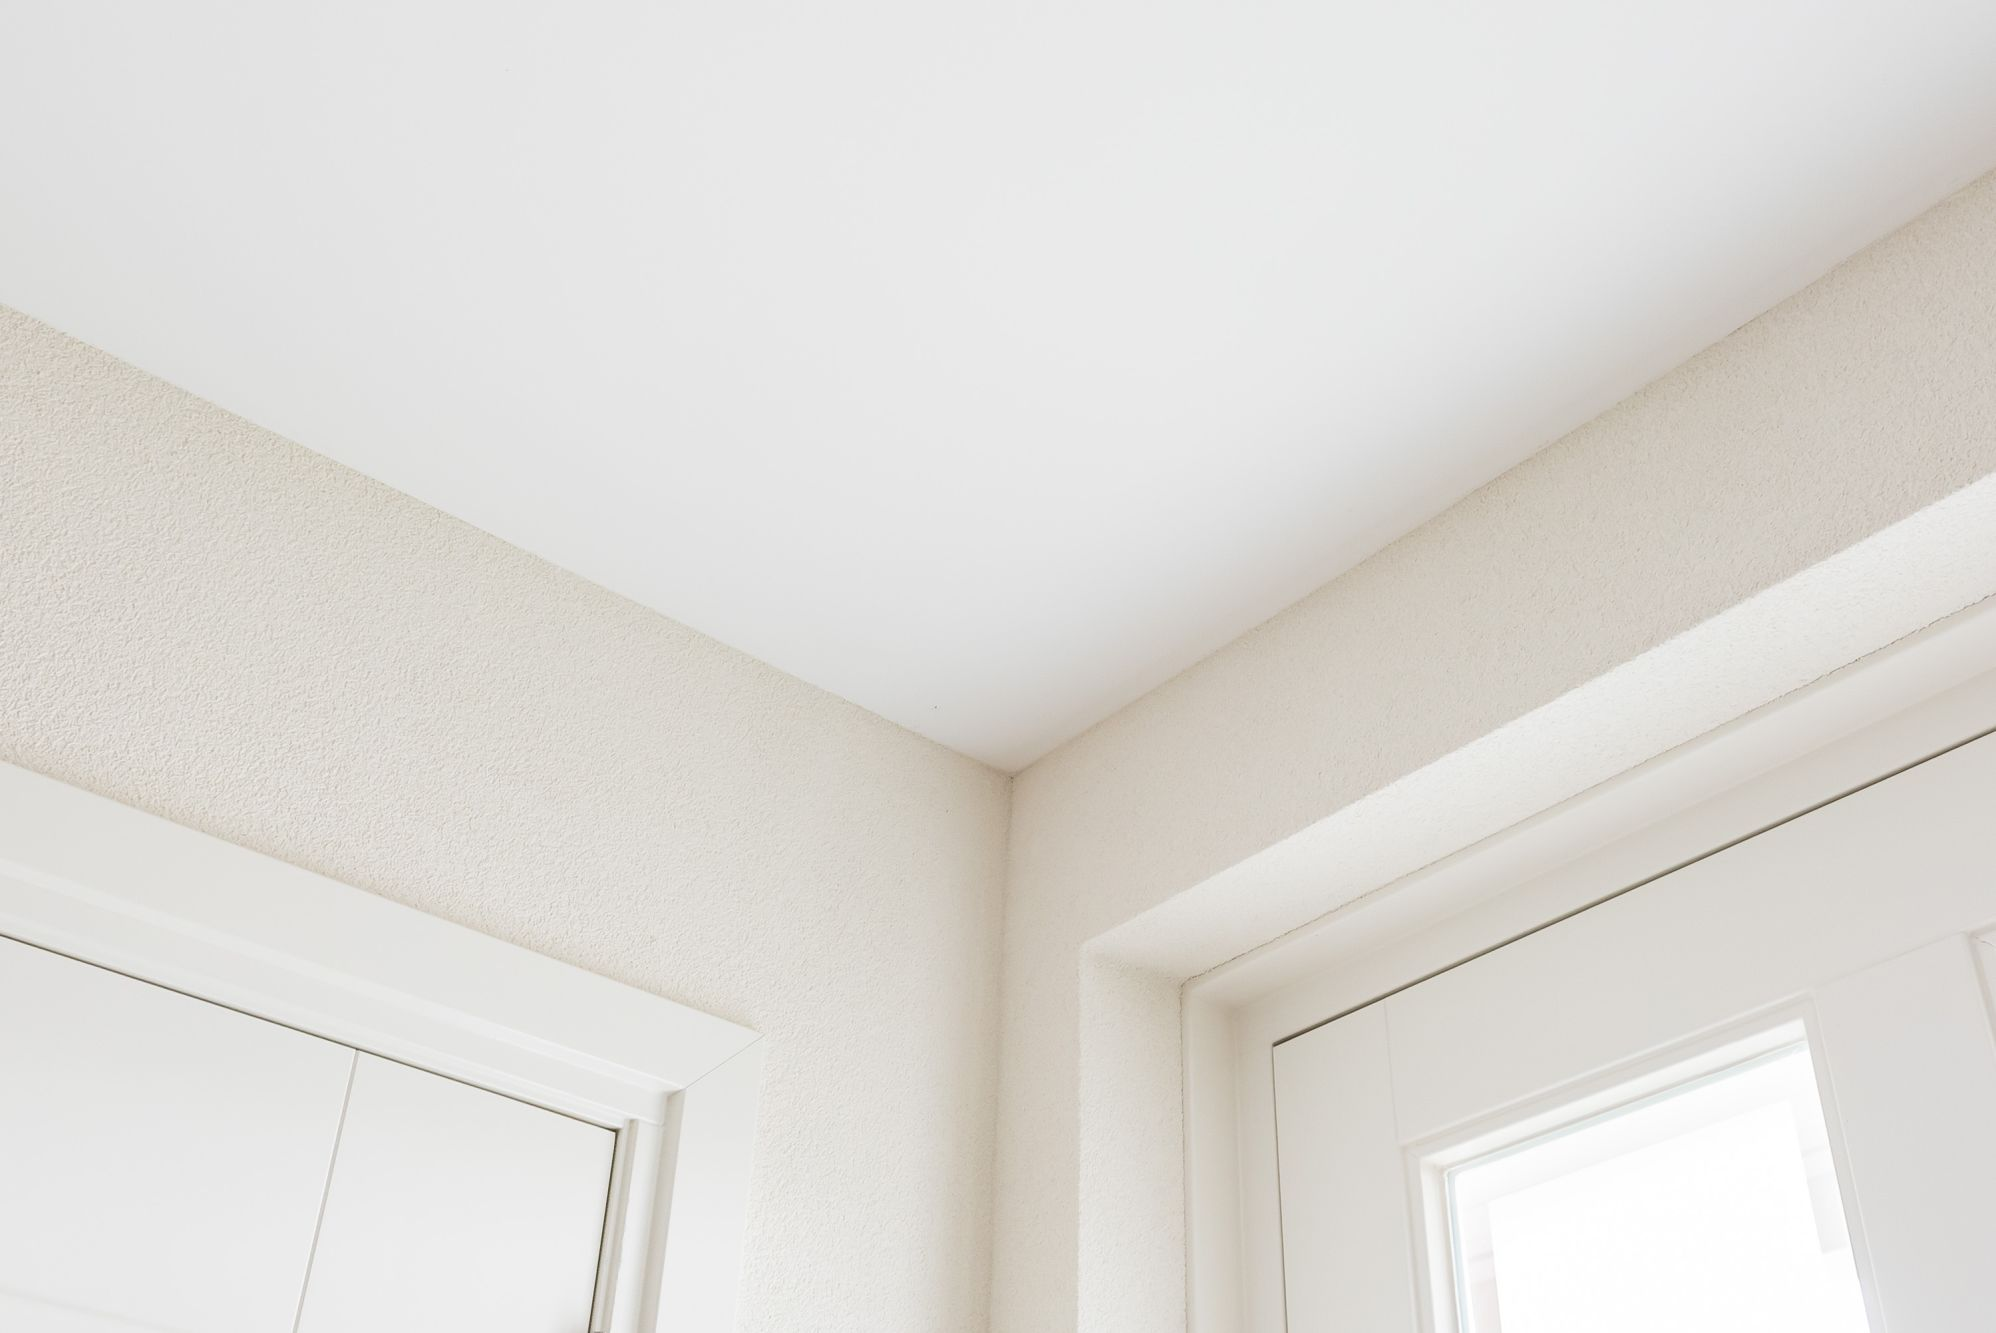 plafond glad stucwerk en wand spachtelputz